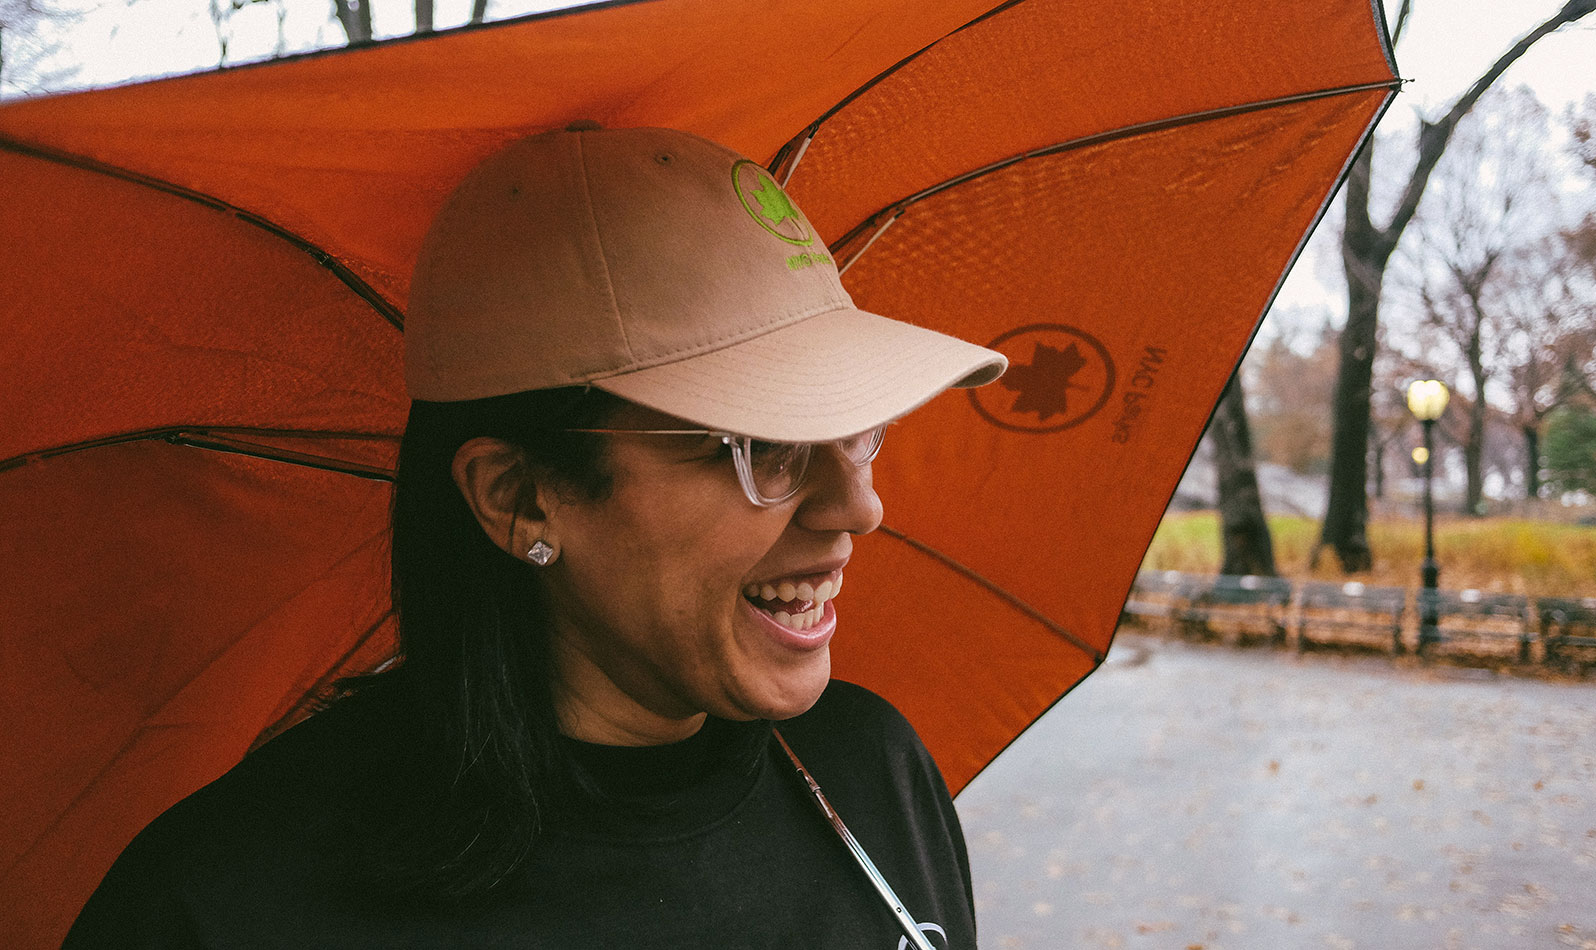 Orange NYC Parks Collapsible Umbrella - $15